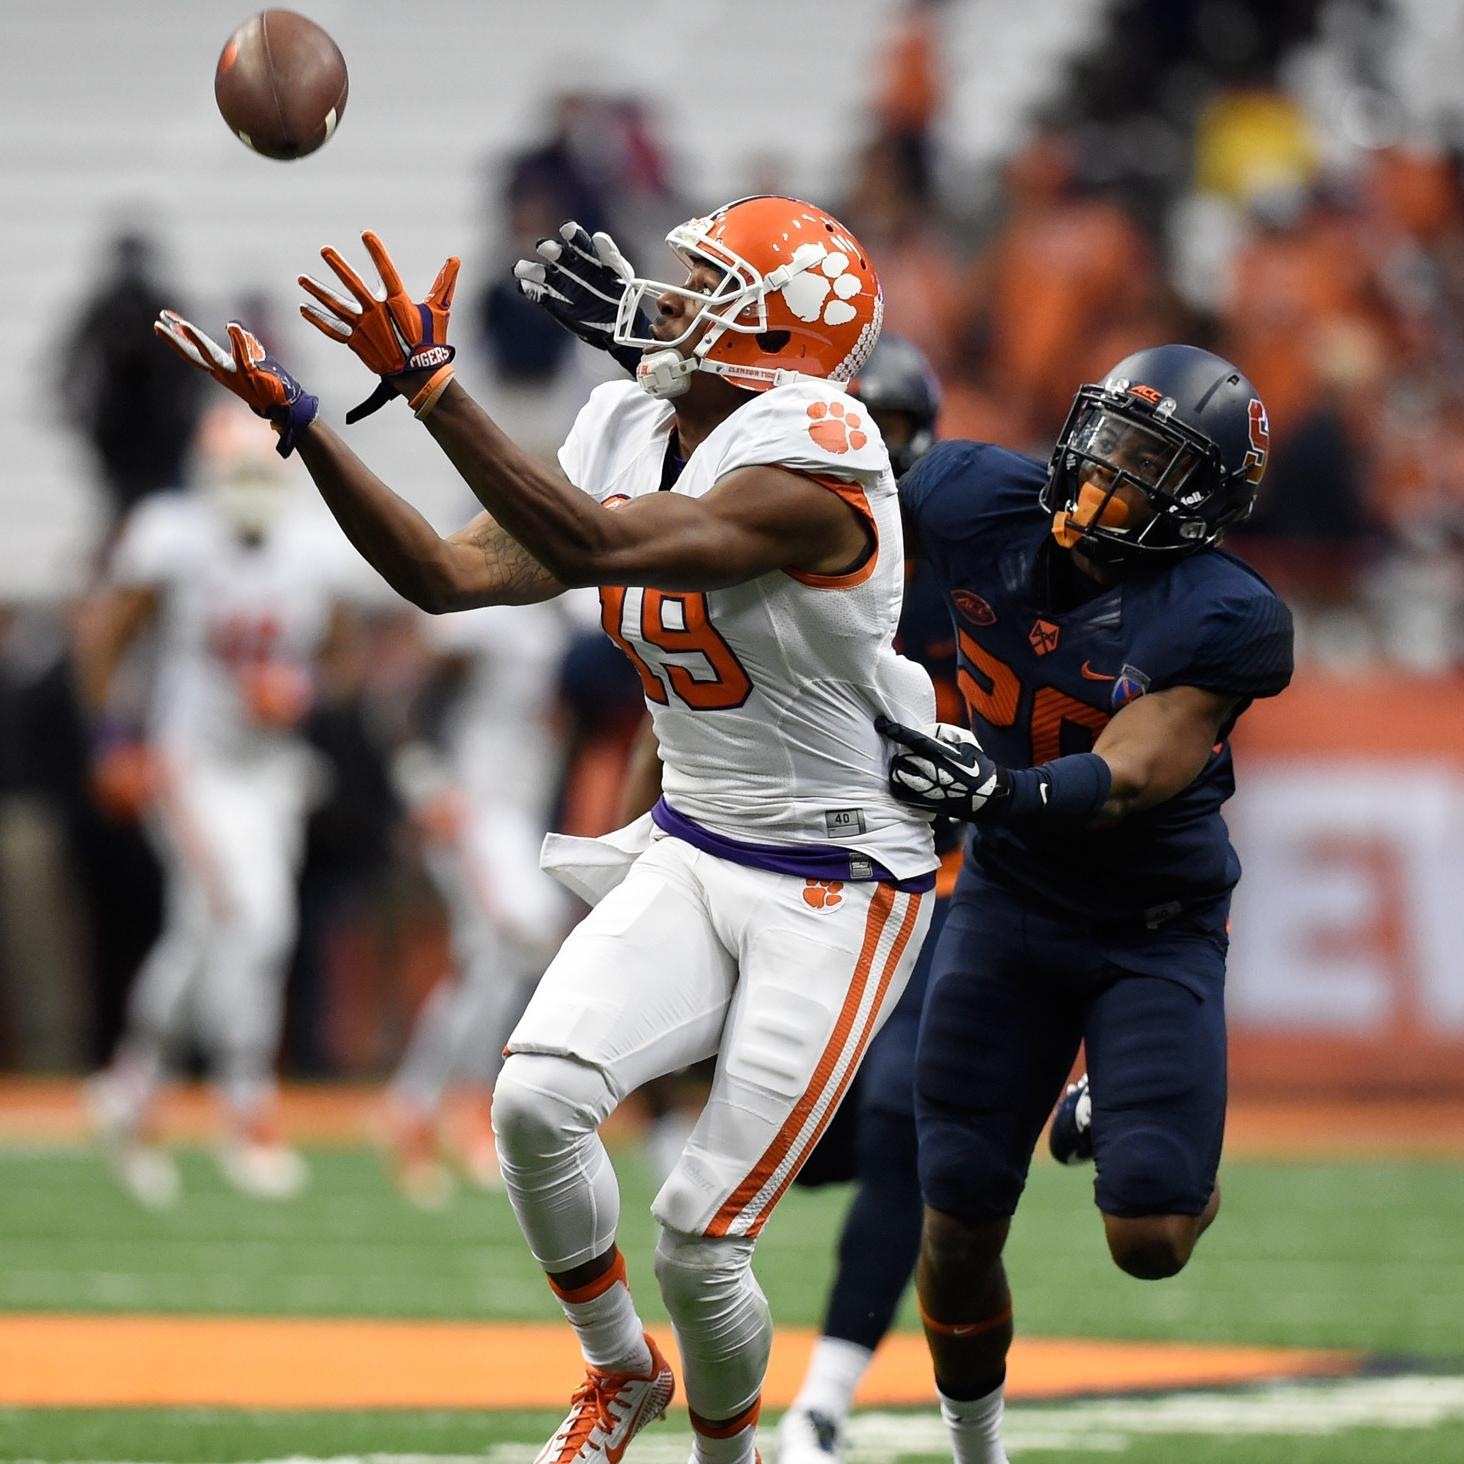 Tigers Stay No. 1 in College Football Playoff Rankings